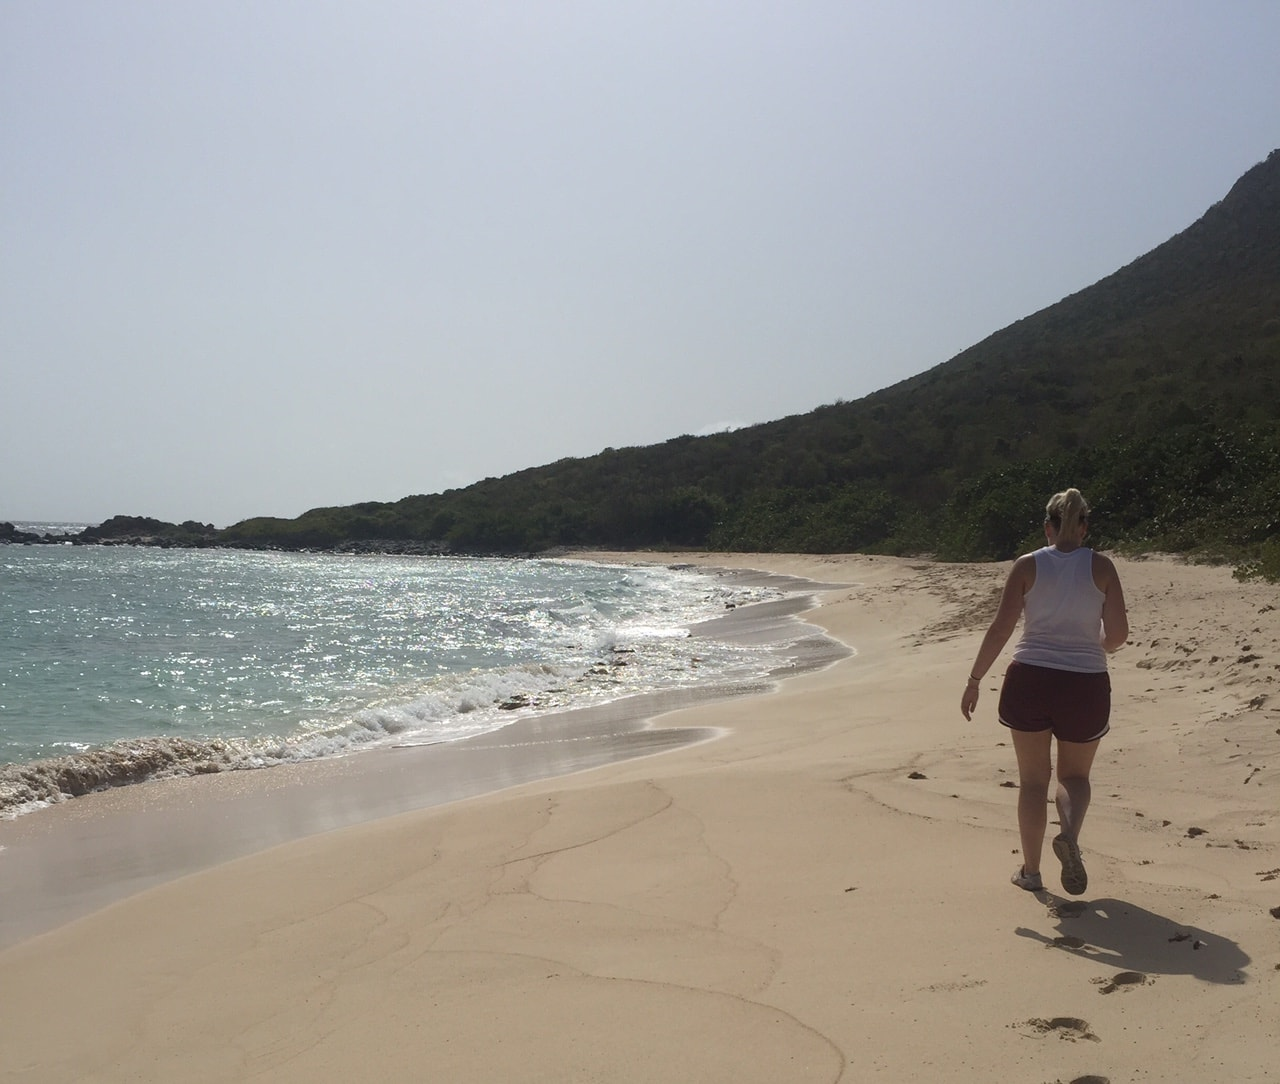 St. Maarten/Martin Hiking Take Two!